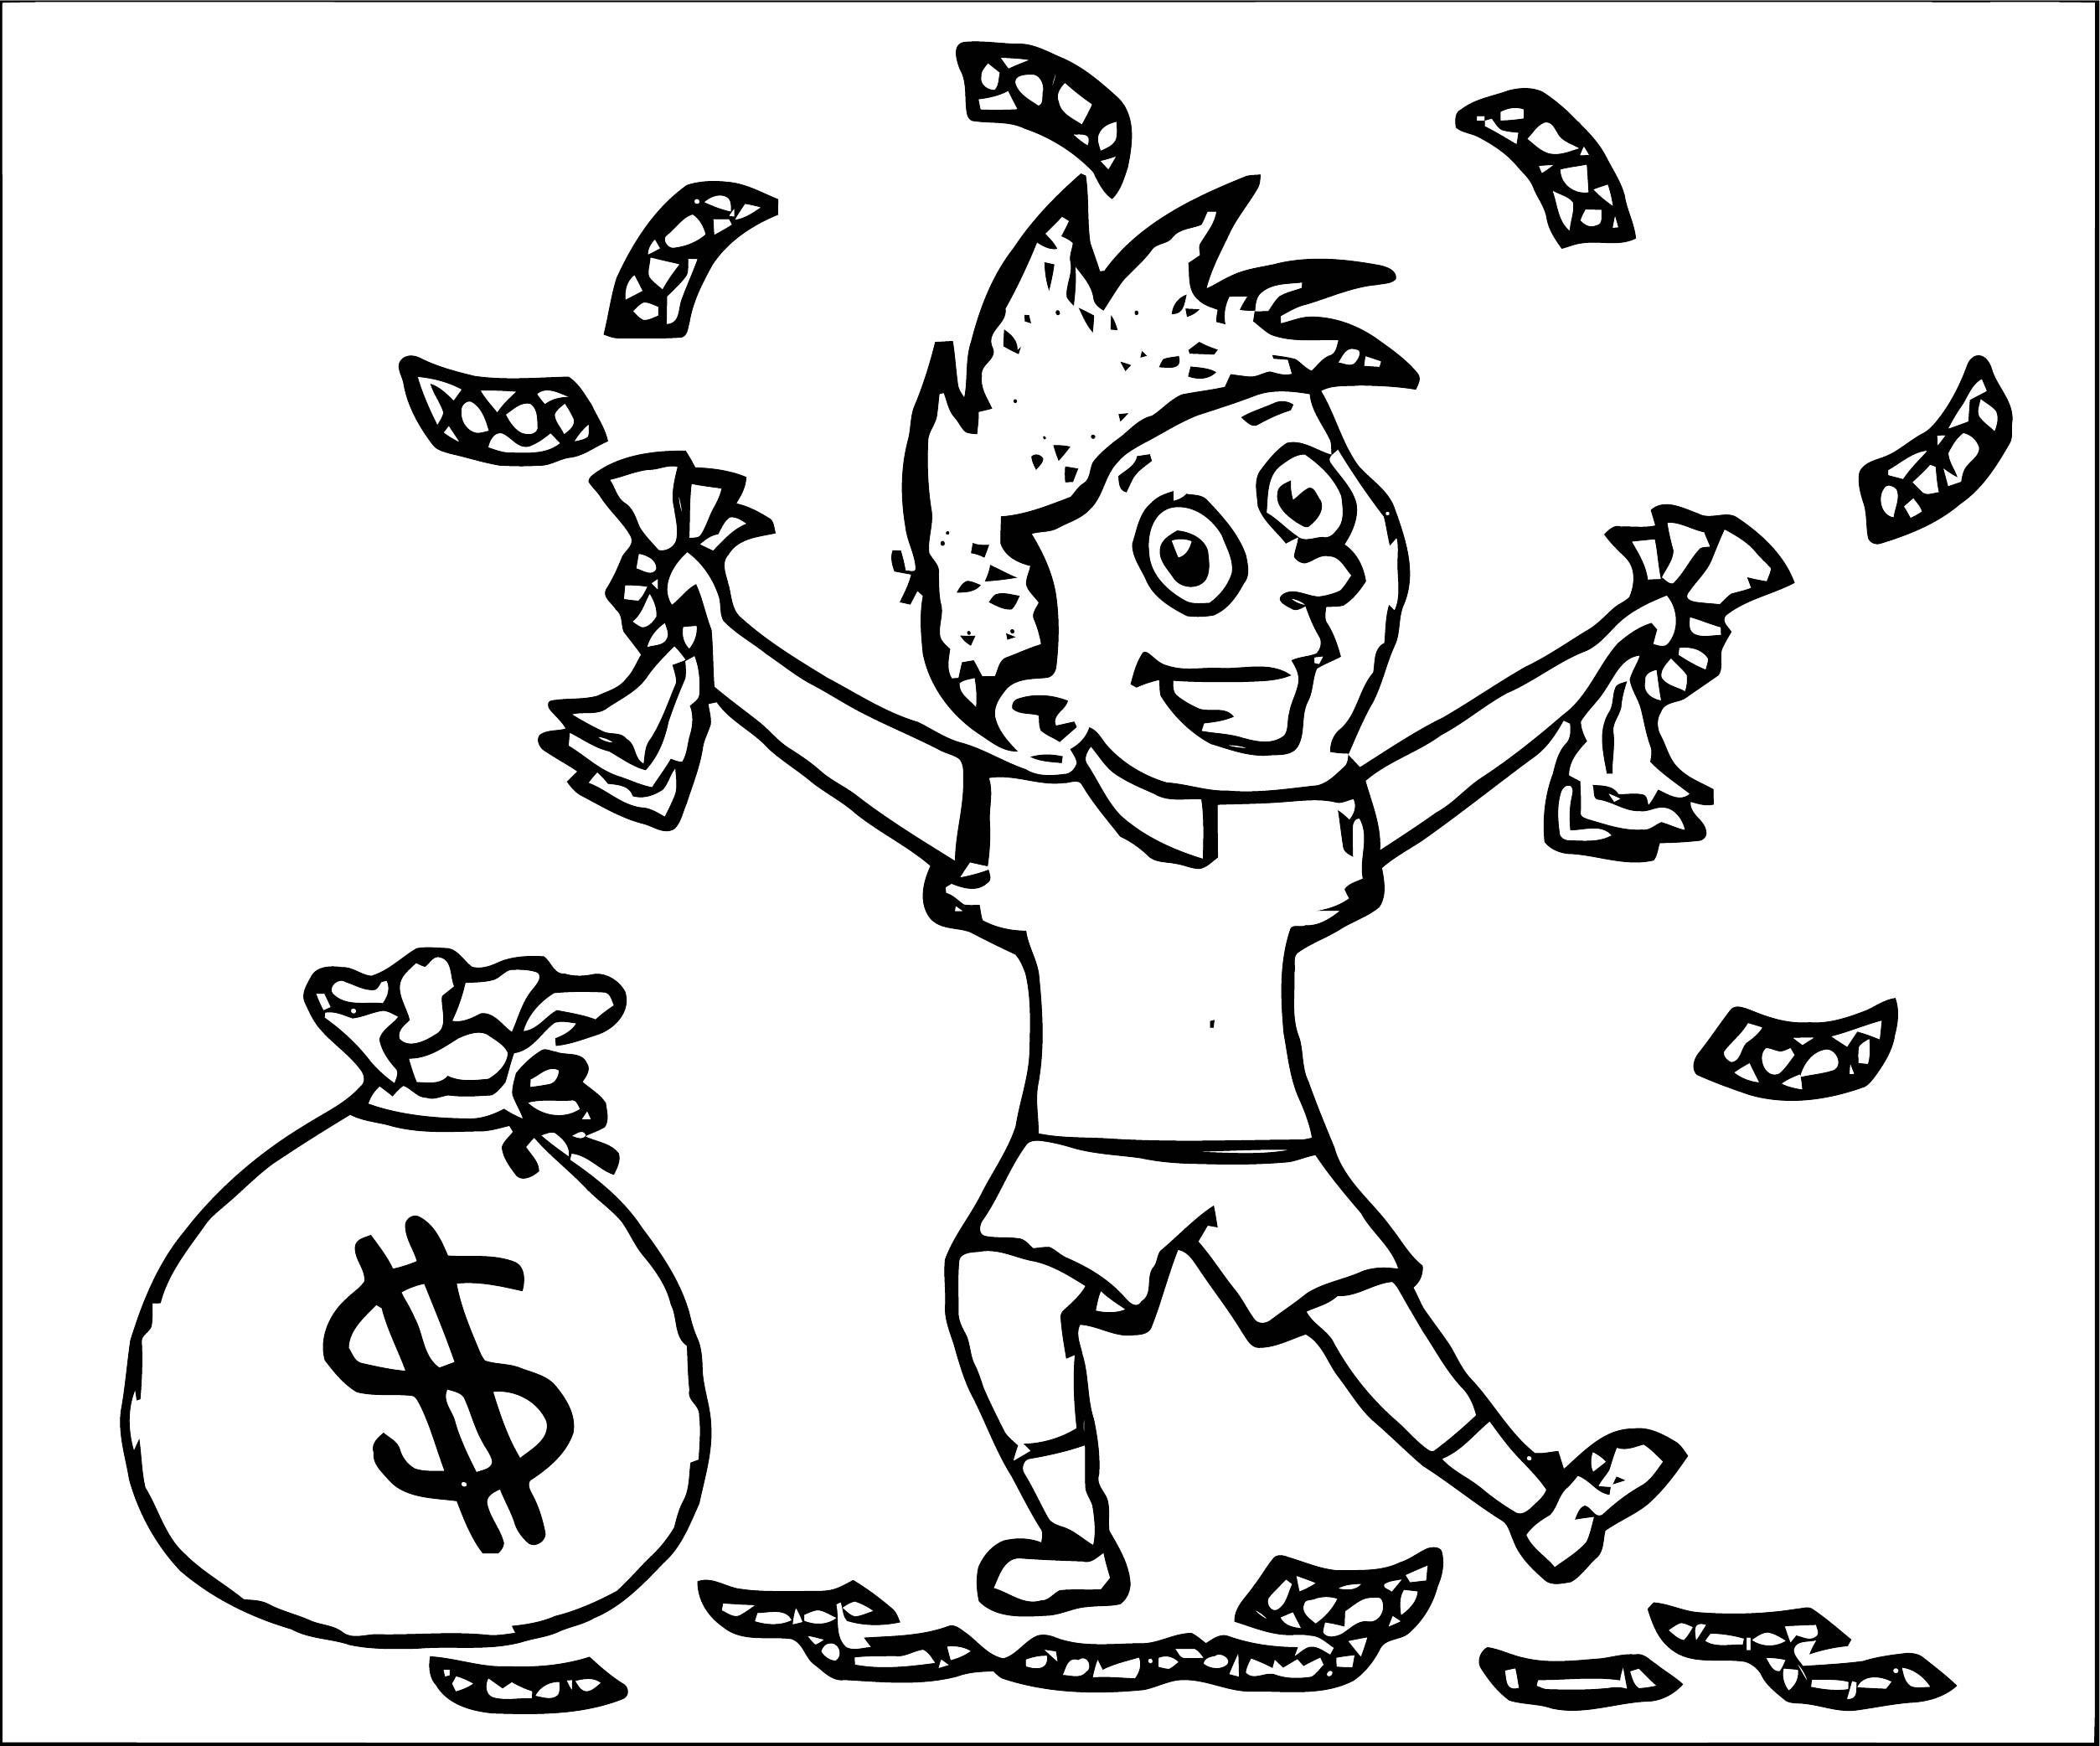 TN Handfull Of Money Coloring Page